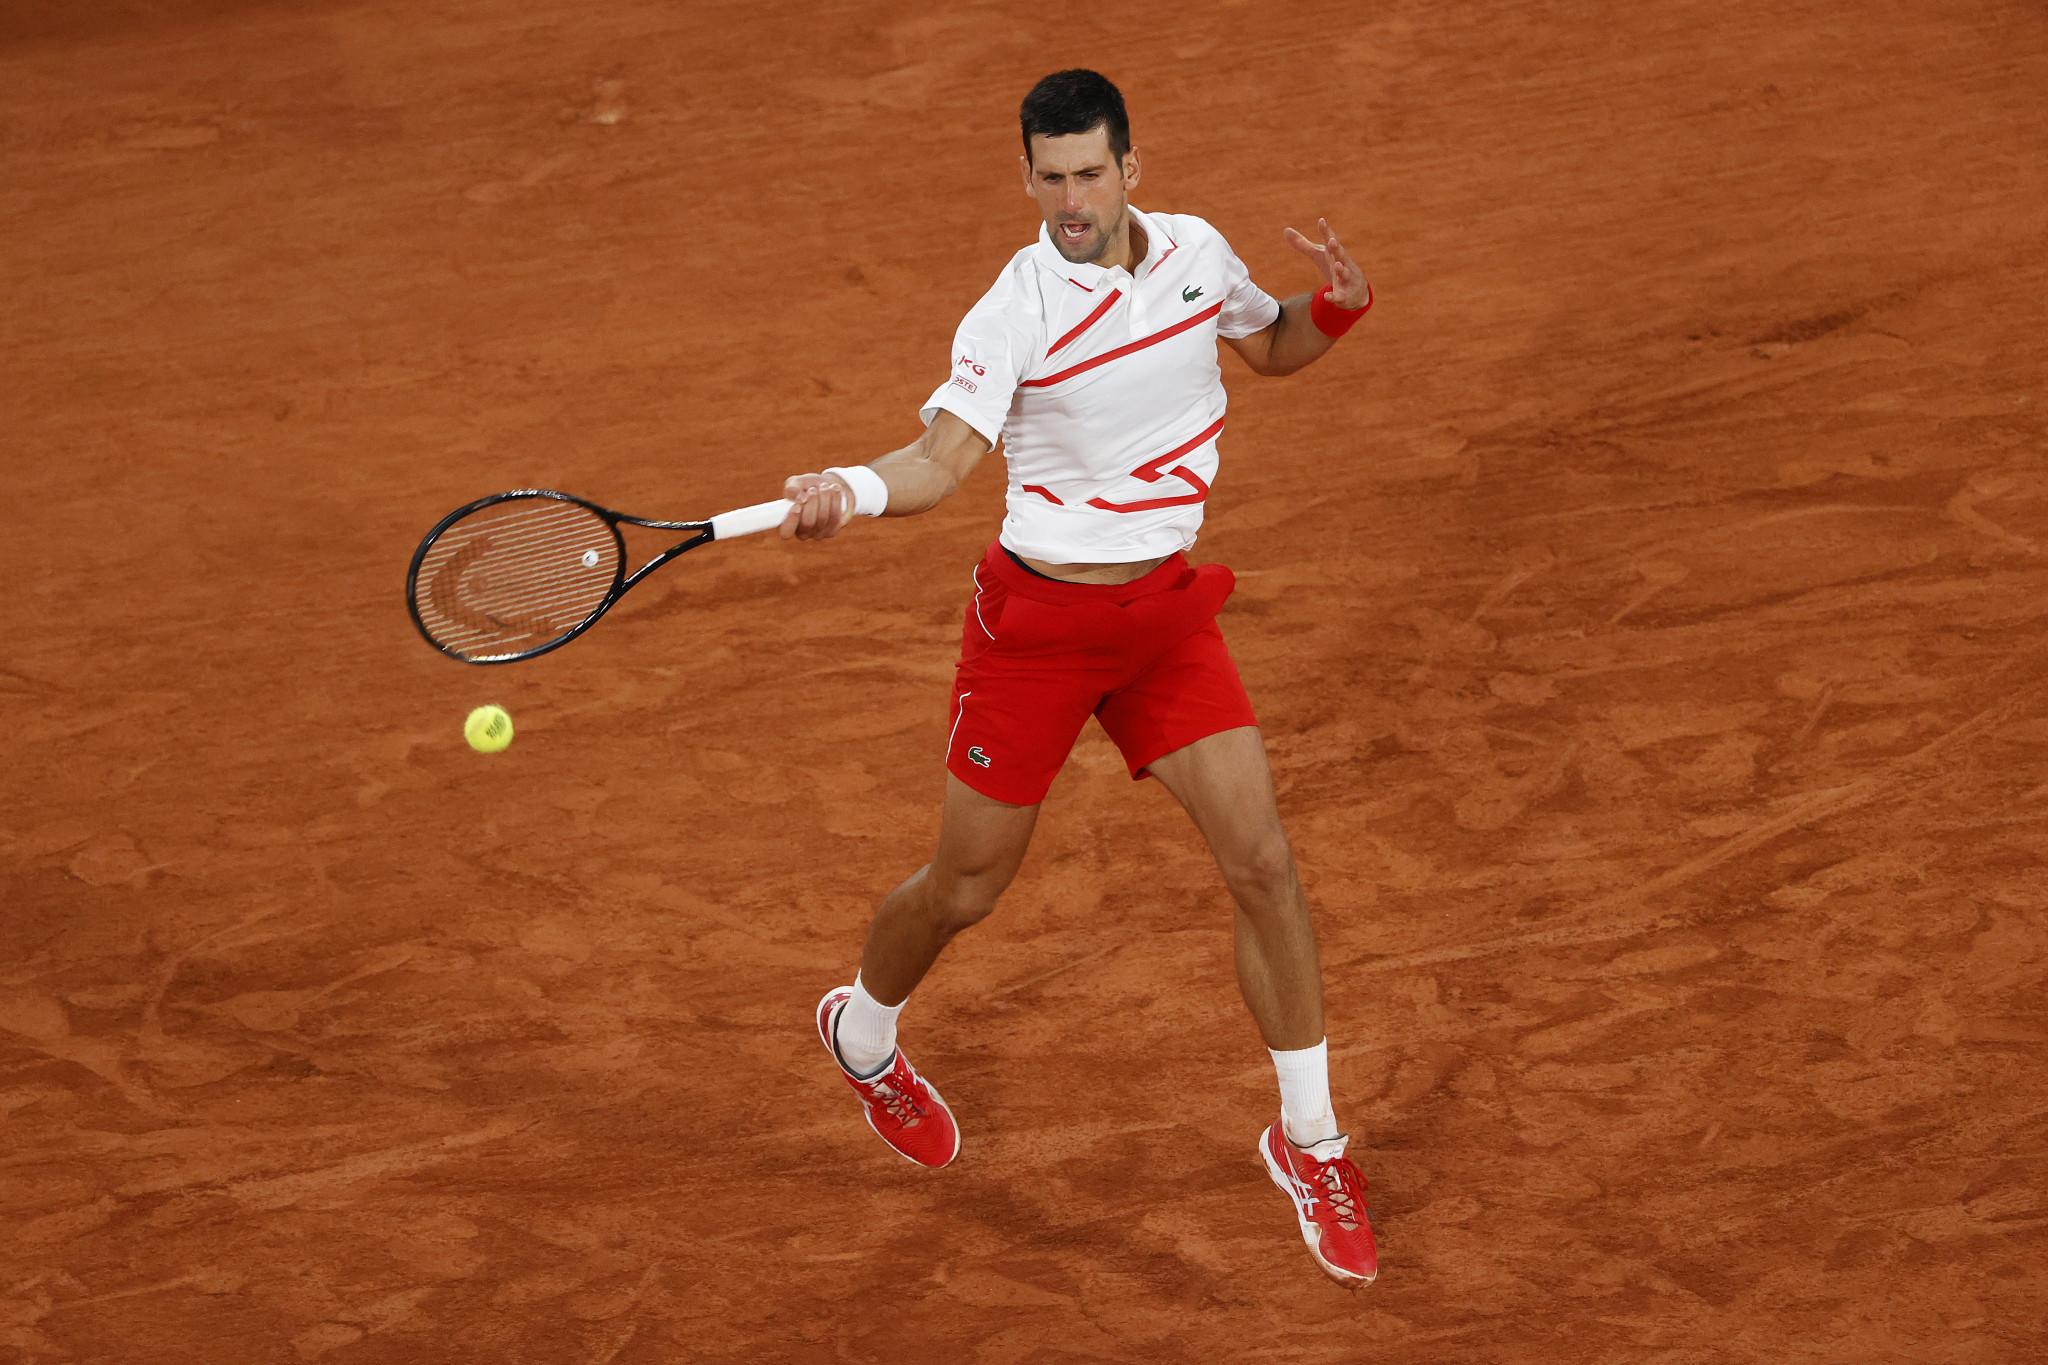 Djokovic enjoys comprehensive win as French Open first round concludes